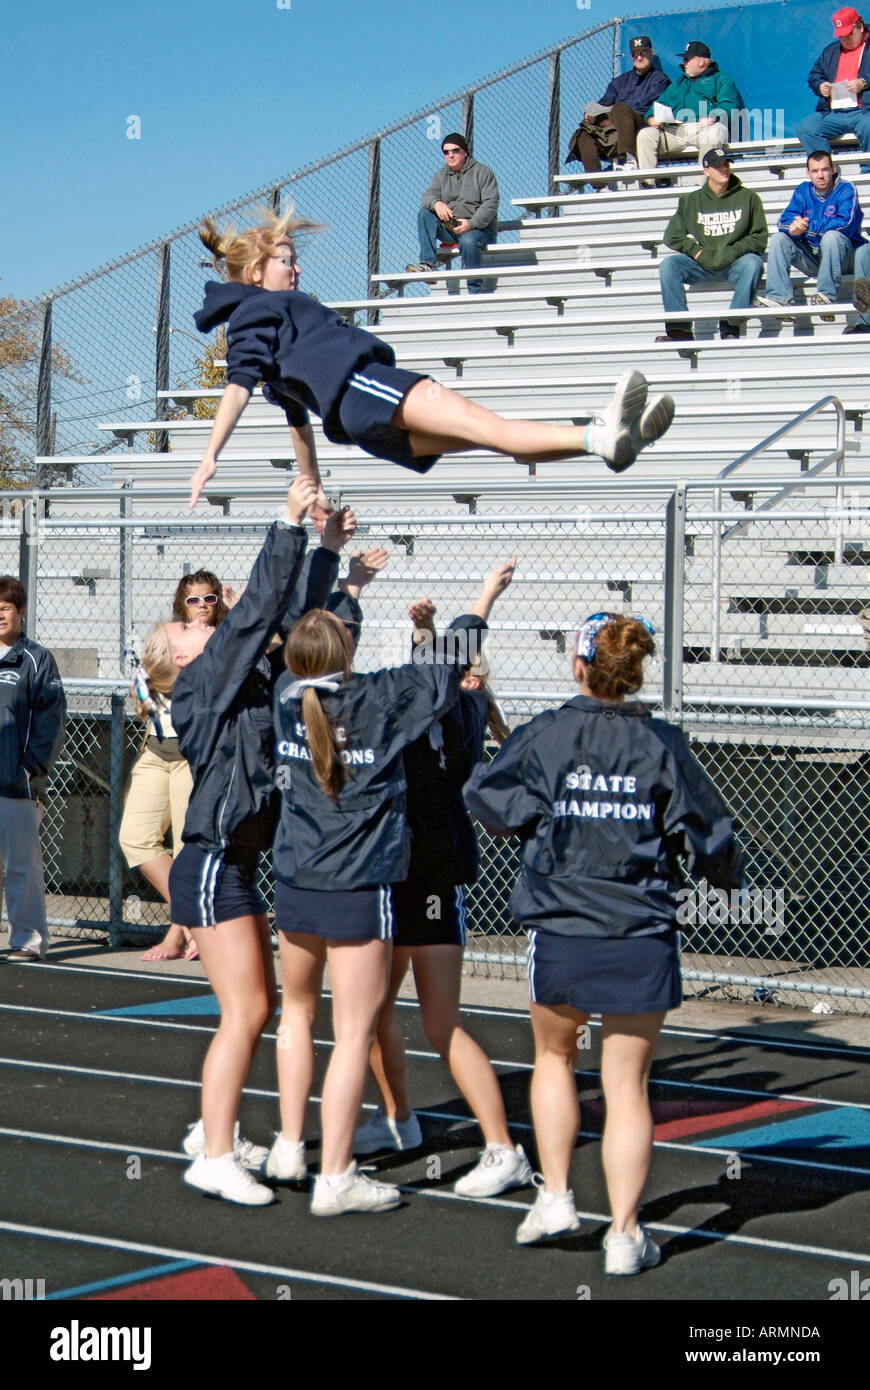 High School cheerleaders perform complicated and sometimes dangerous maneuvers during presentation at a football game - Stock Image